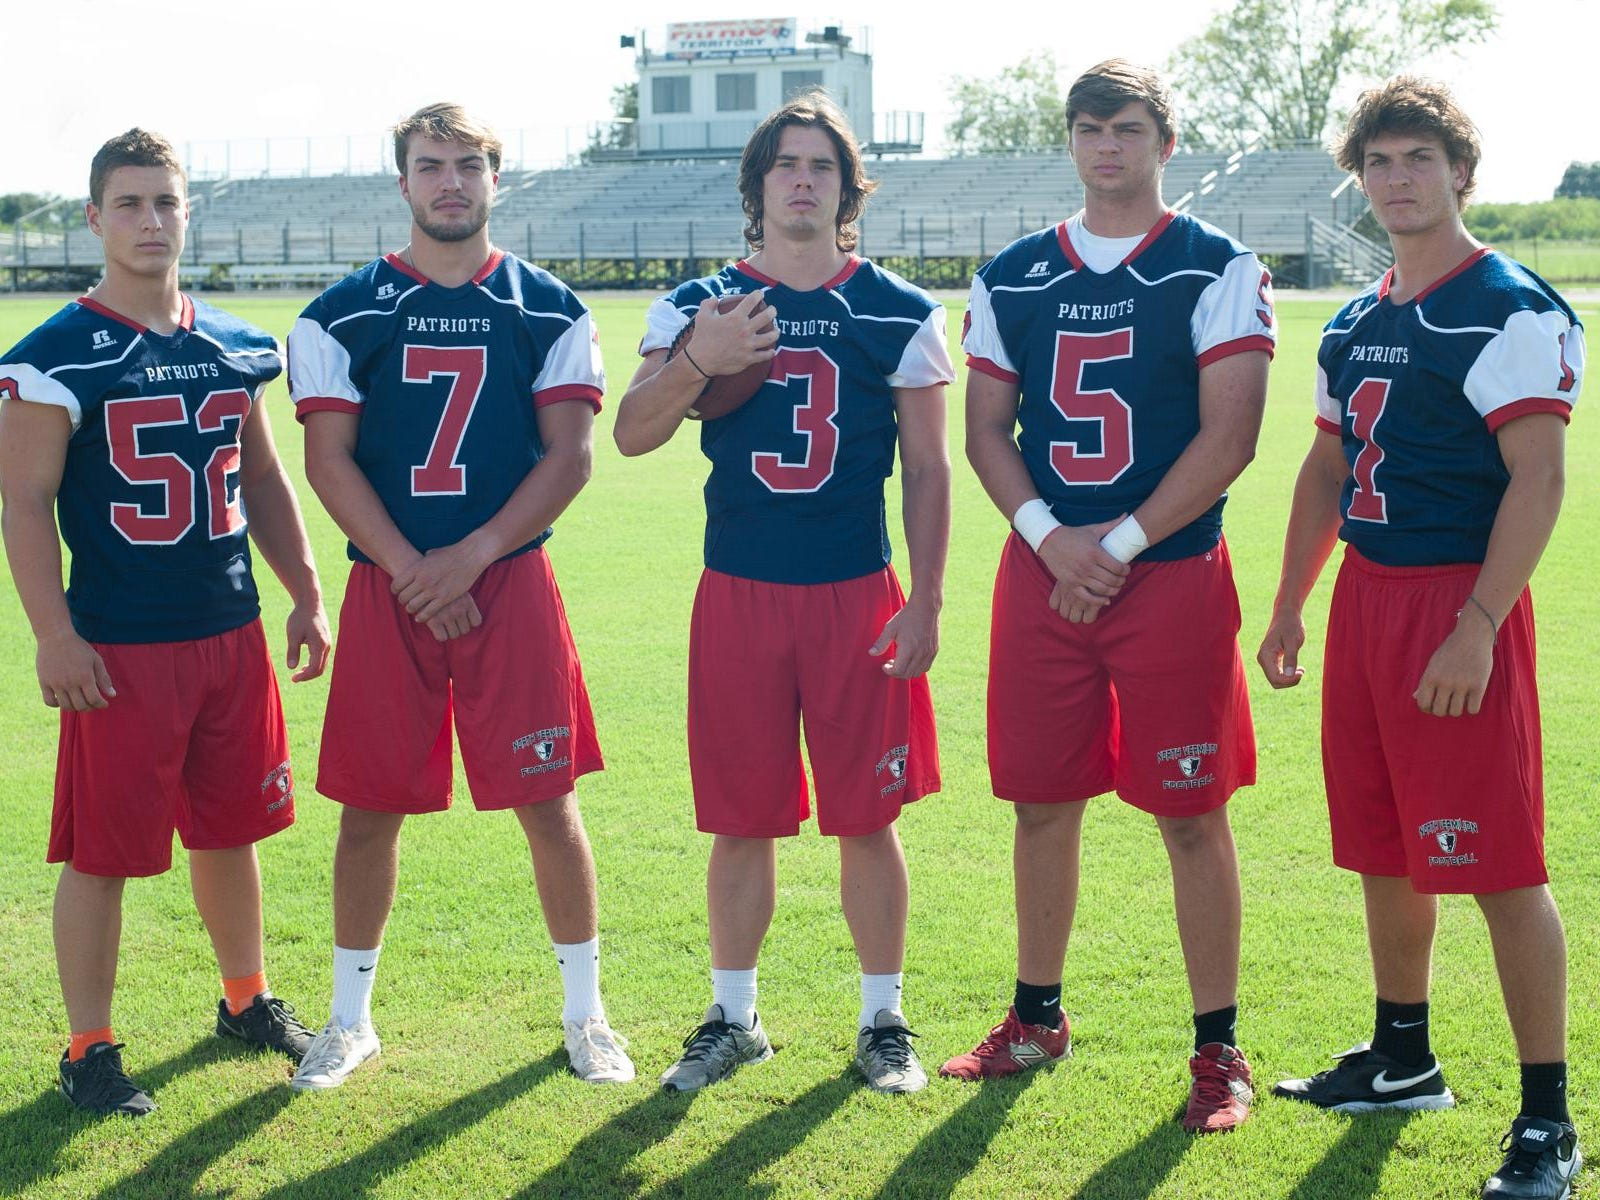 Photo courtesy Beverly VincentNorth Vermilion offensive standouts Charlie Gallusser (52), Dylan Dent (7), Dade Dieterich (3), Alan Rowell (5) and Connor Dupuy (1) prepare for a competitive season in District 8-3A.